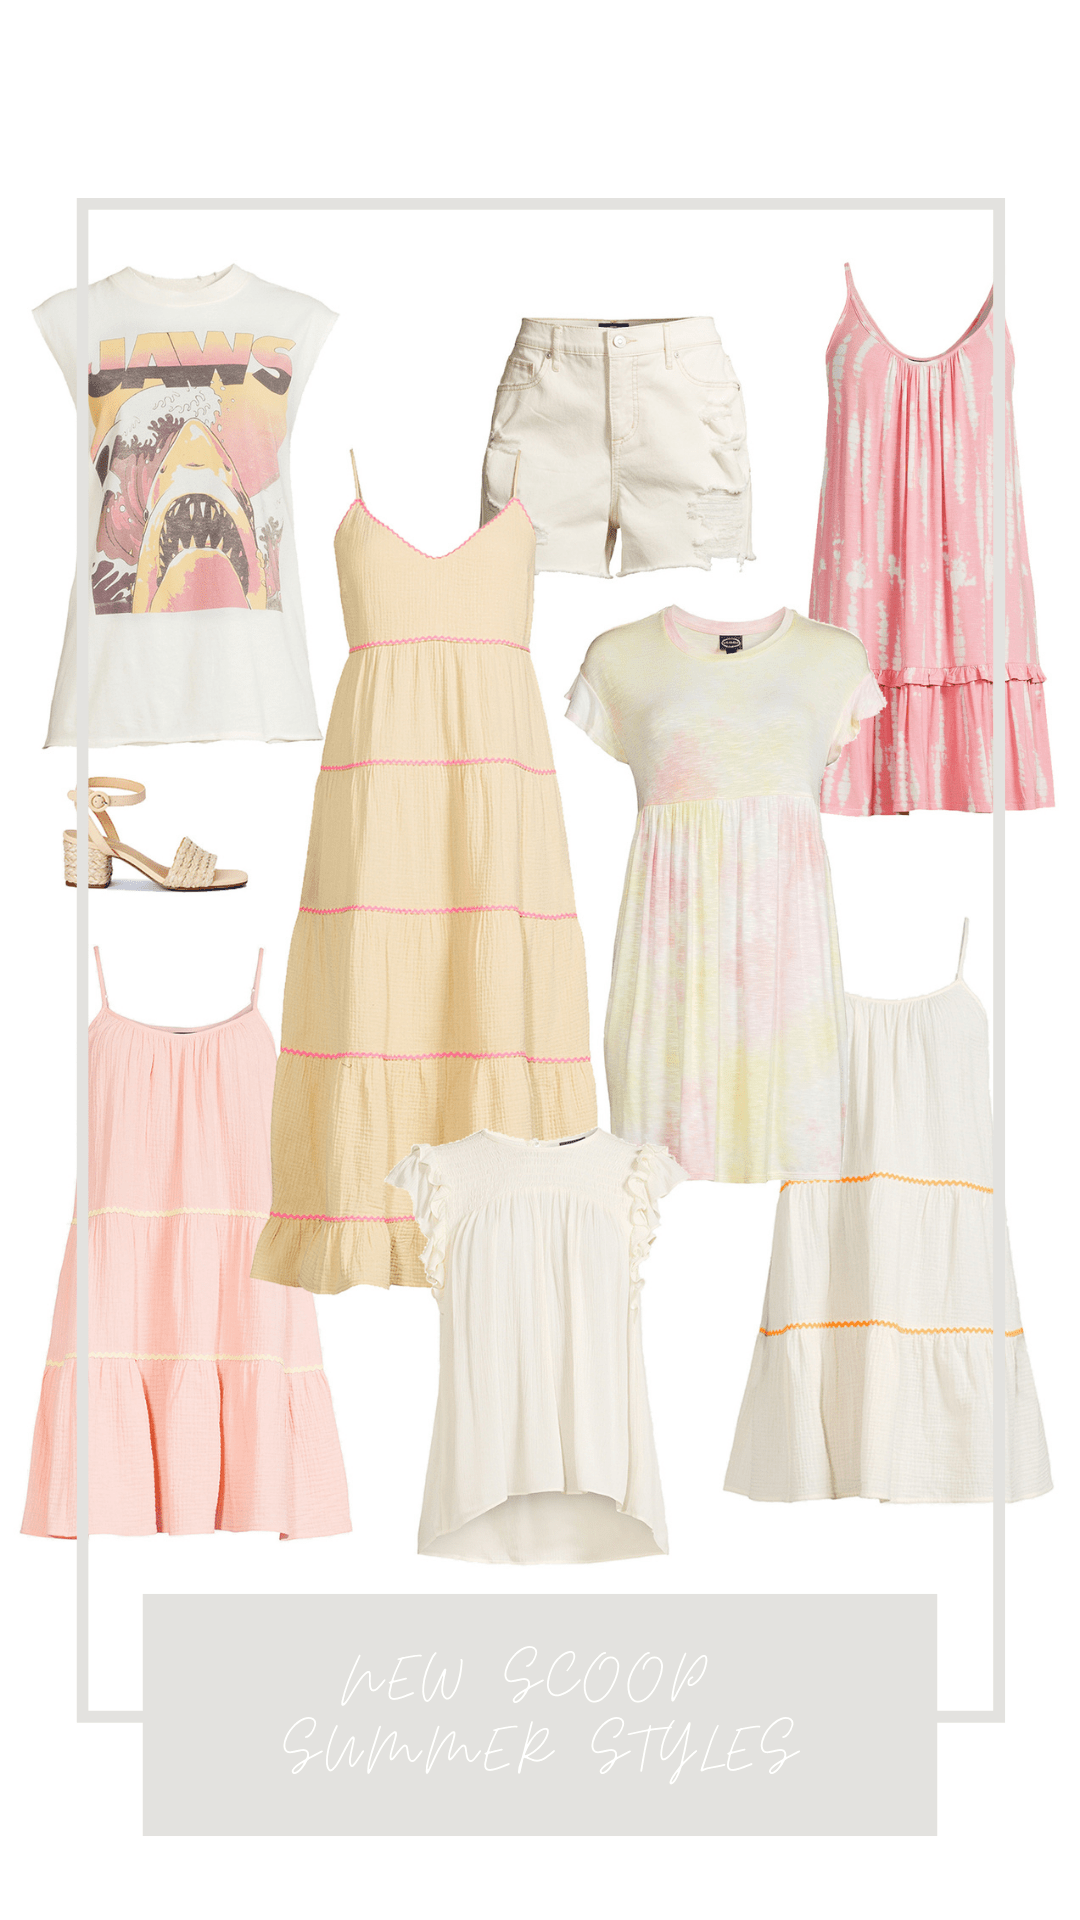 New Scoop Summer Styles - Dresses, graphic tees, jean shorts and more.